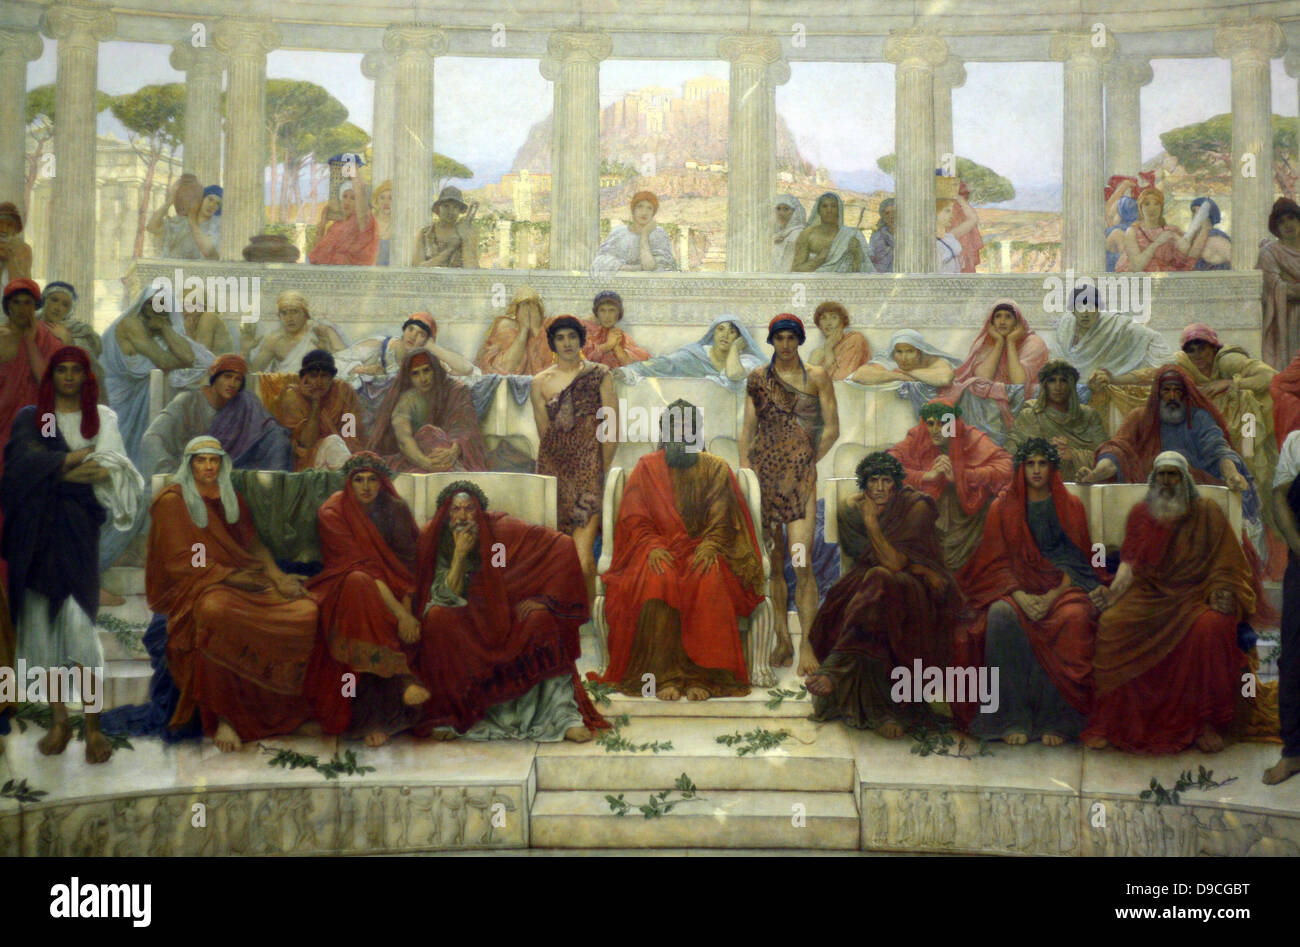 William Blake Richmond 1843-1921 'An audience in Athens during the representation of the Agamemnon' 1884. - Stock Image